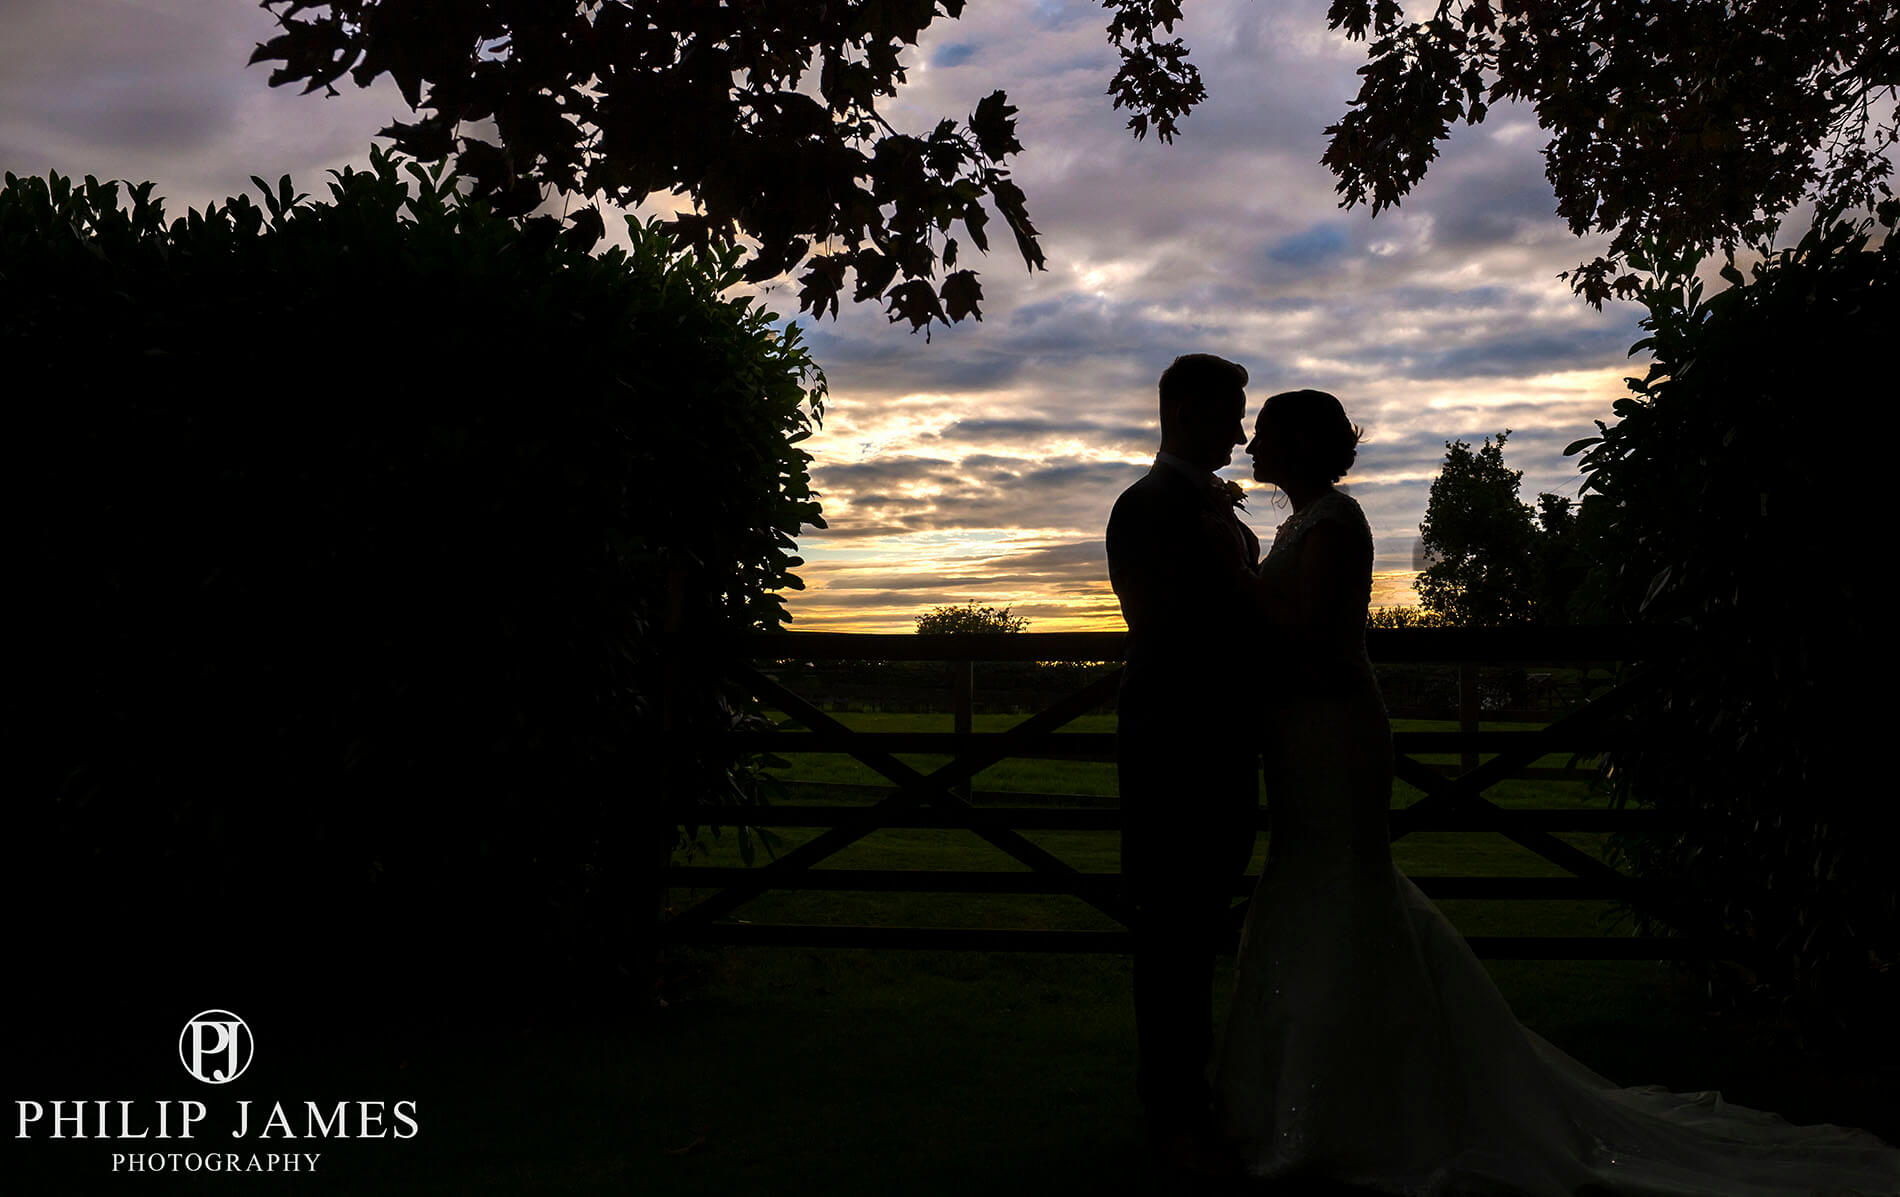 Birmingham Wedding Photographer - Philip James Photography based in Solihull (35 of 68)